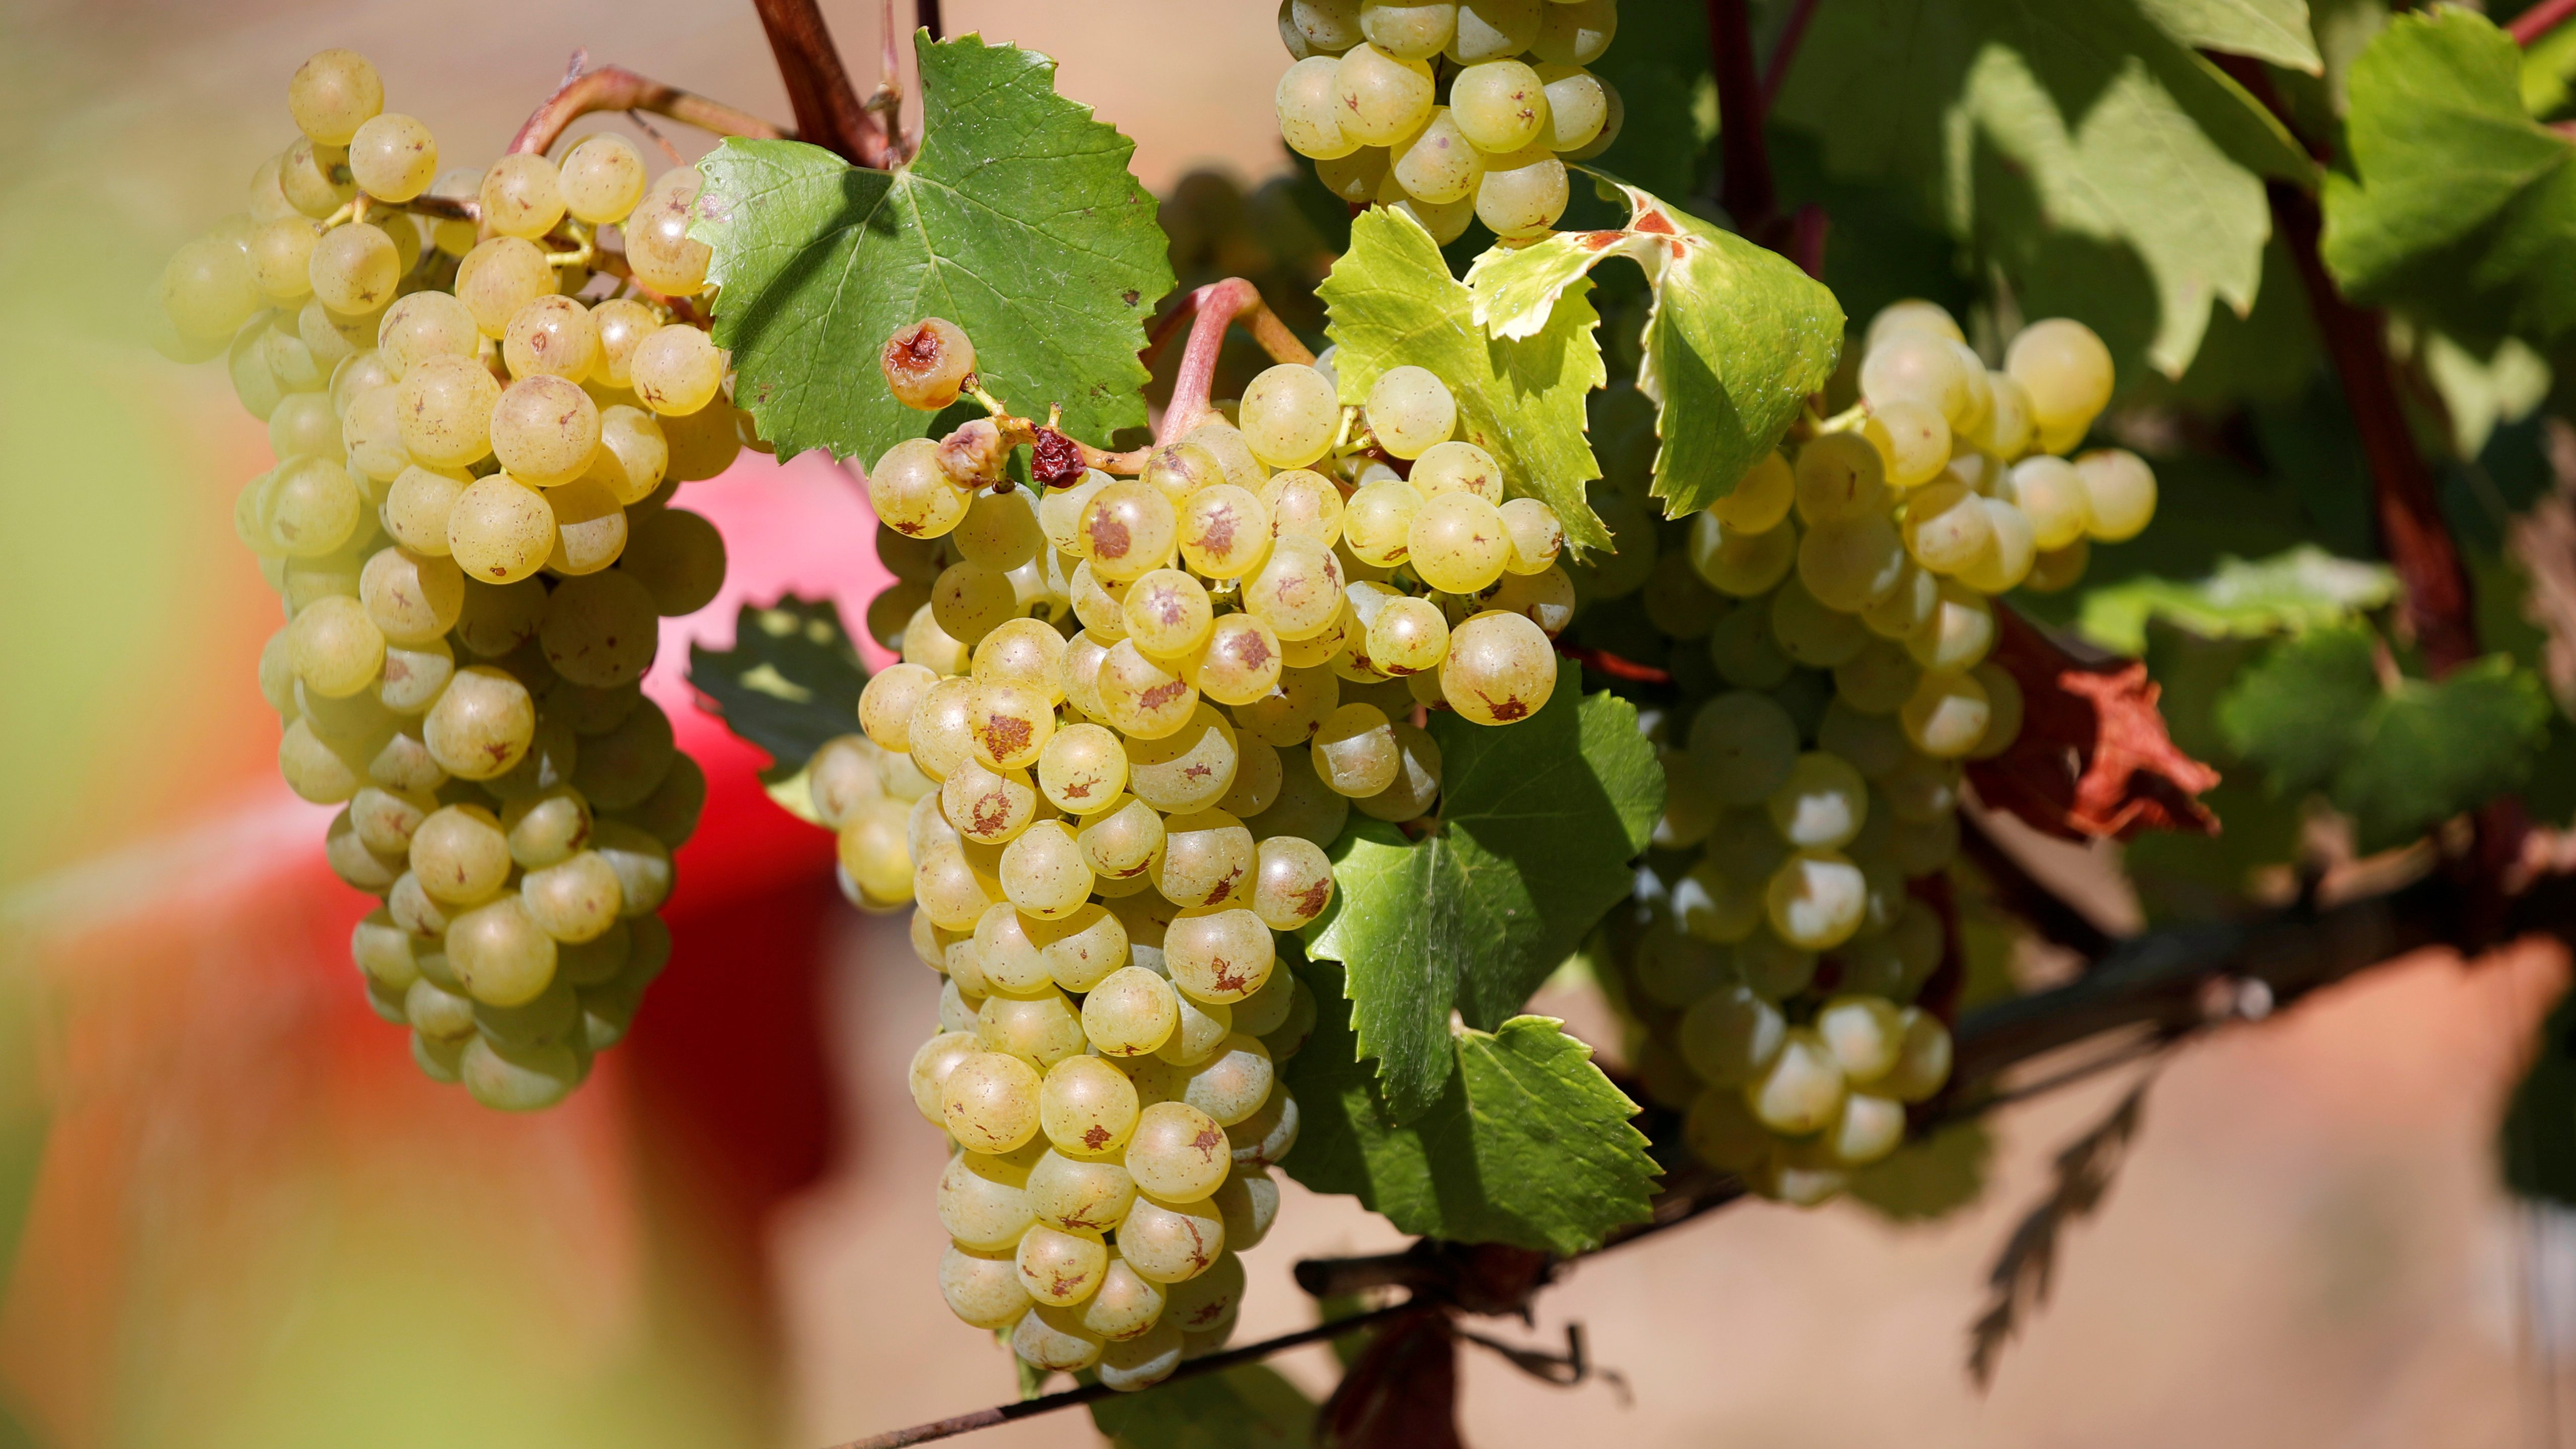 Grapes are pictured at the Brun de Neuville vineyard